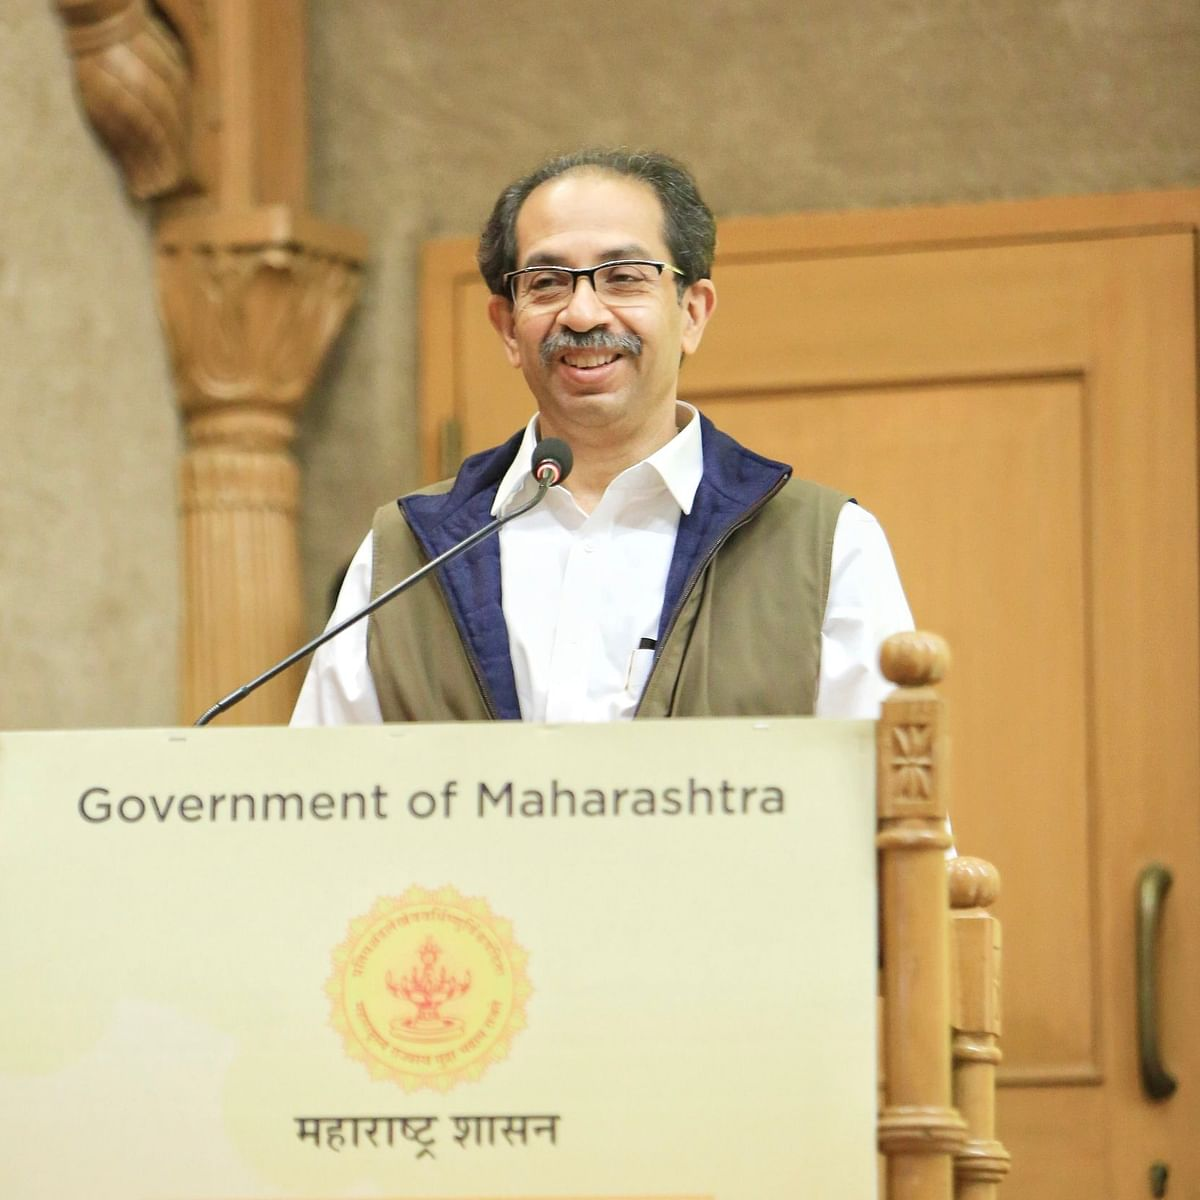 New Year's eve advisory from Maharashtra government: Simply stay at home